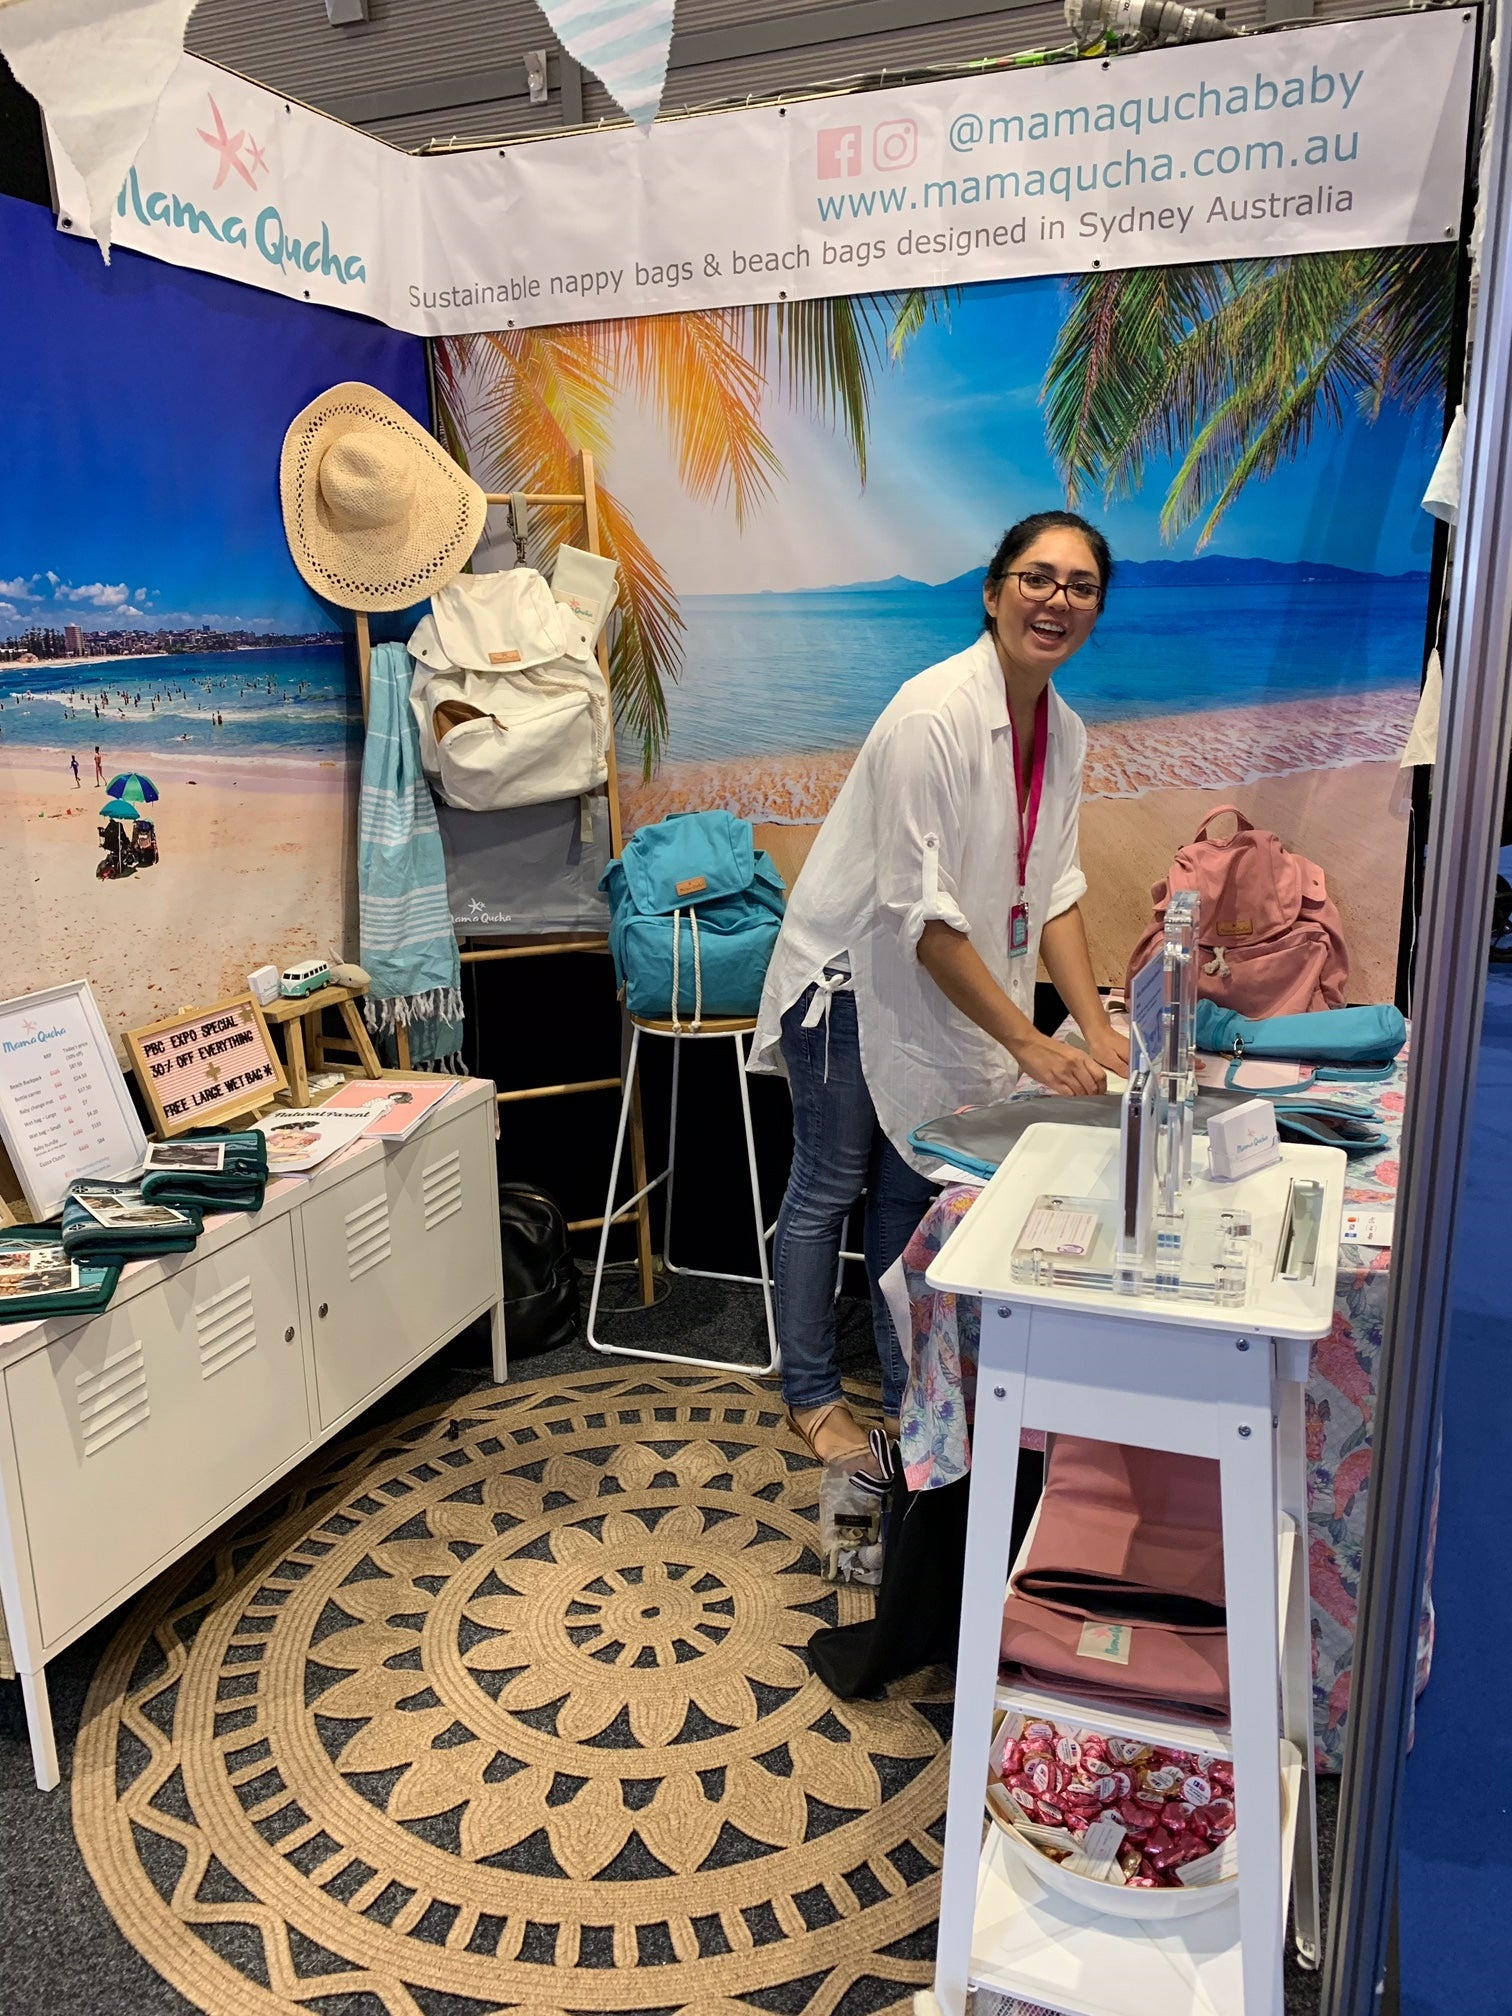 Founder of Mama Qucha at the PBC Expo in Sydney in May 2019